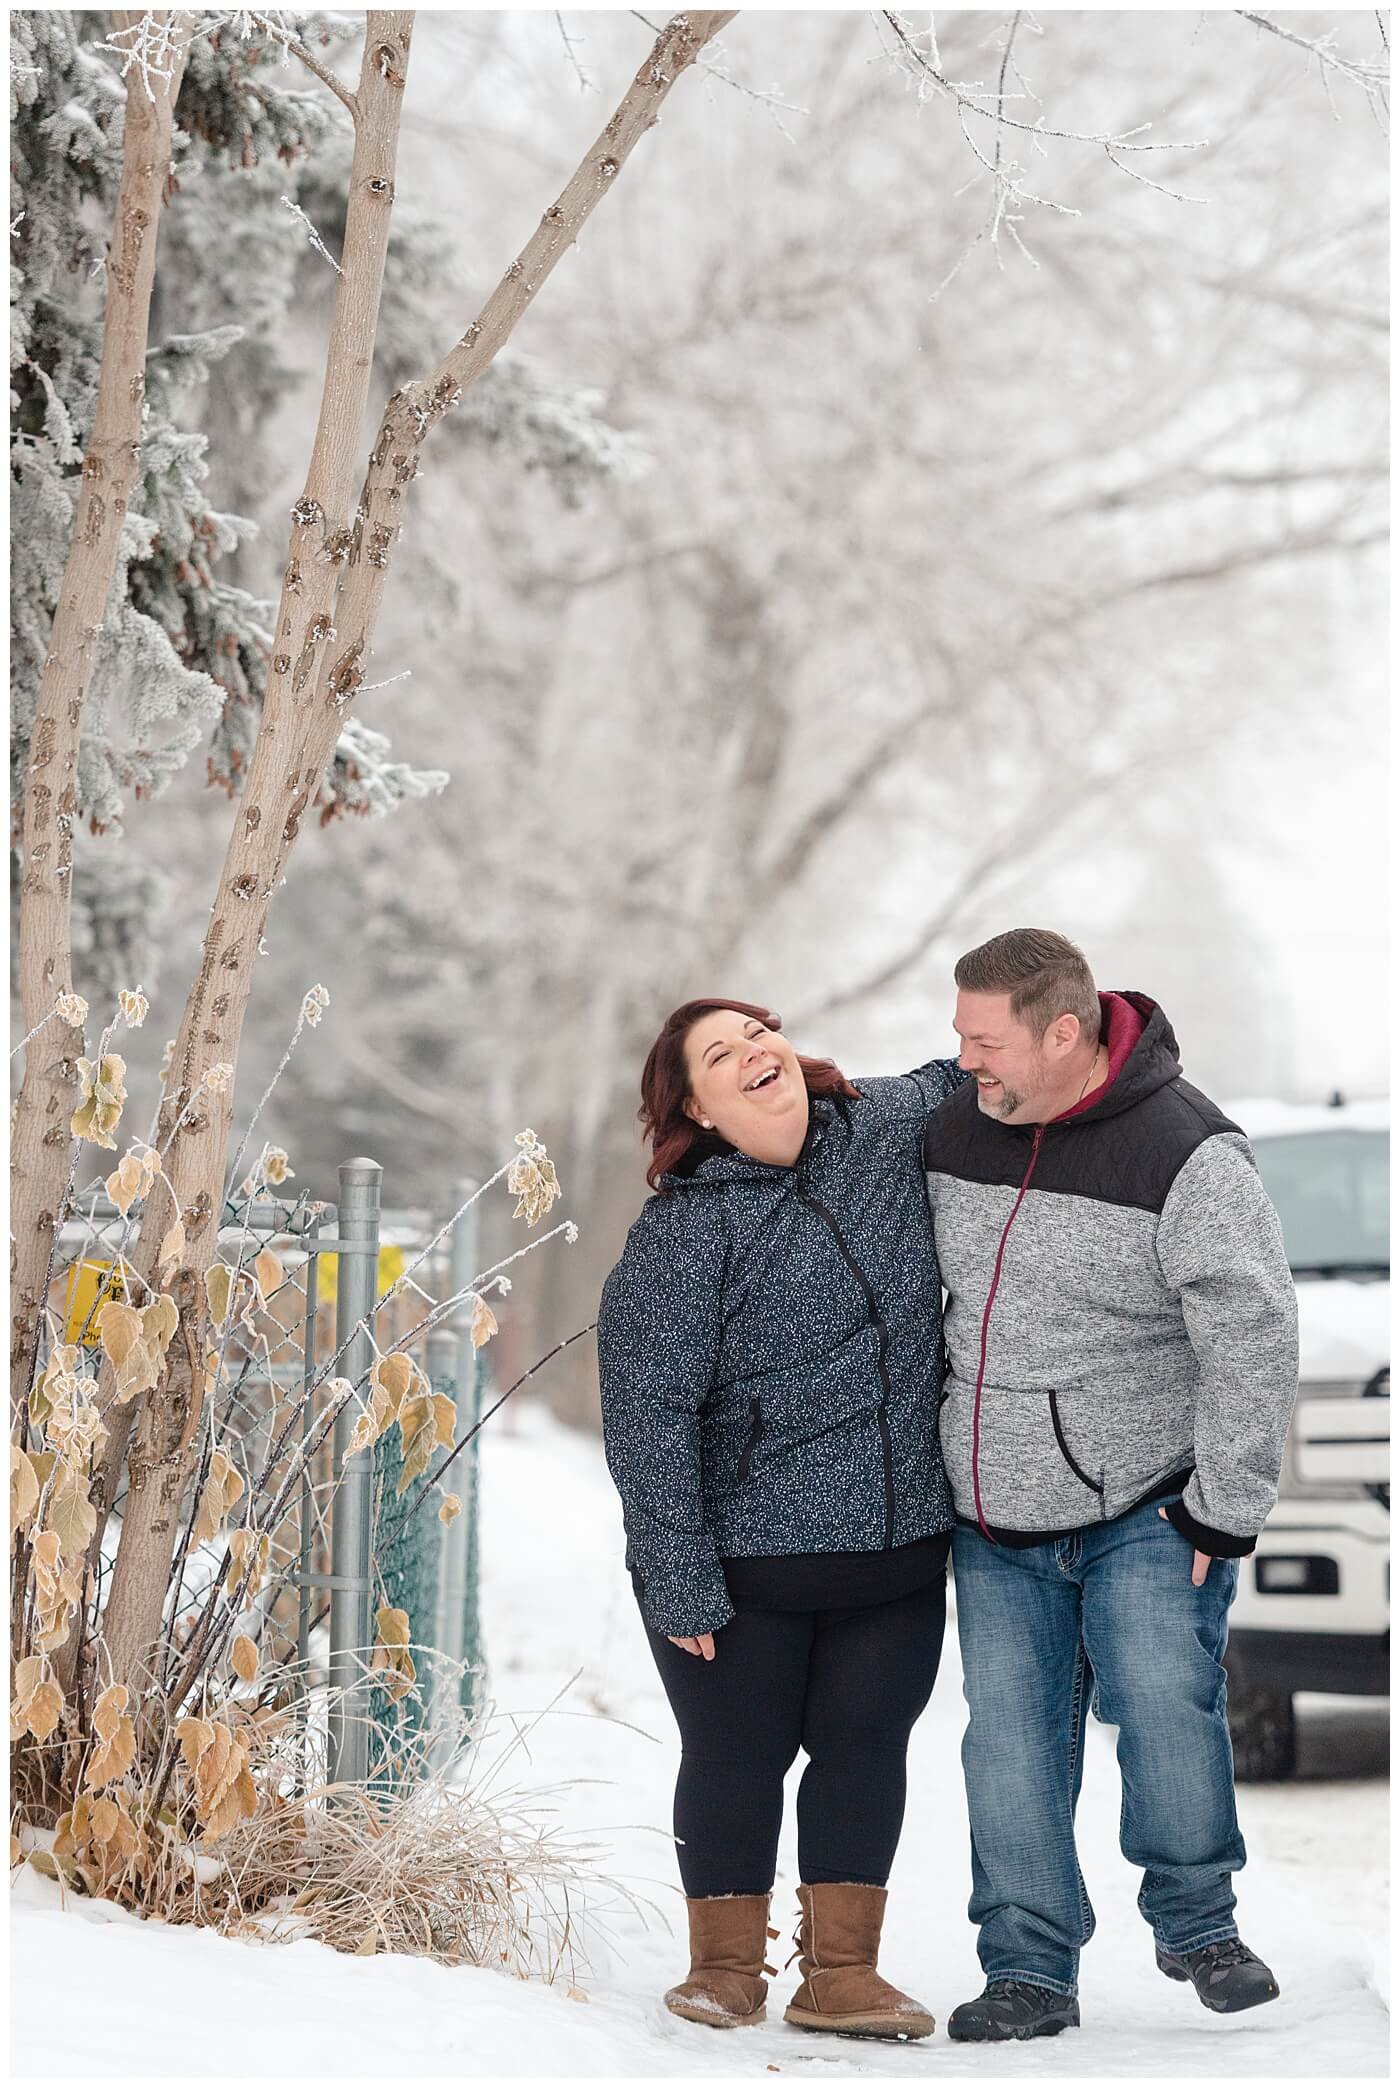 Regina Wedding Photographers - Ashley - Scott - Couple walks down the street together in the snow